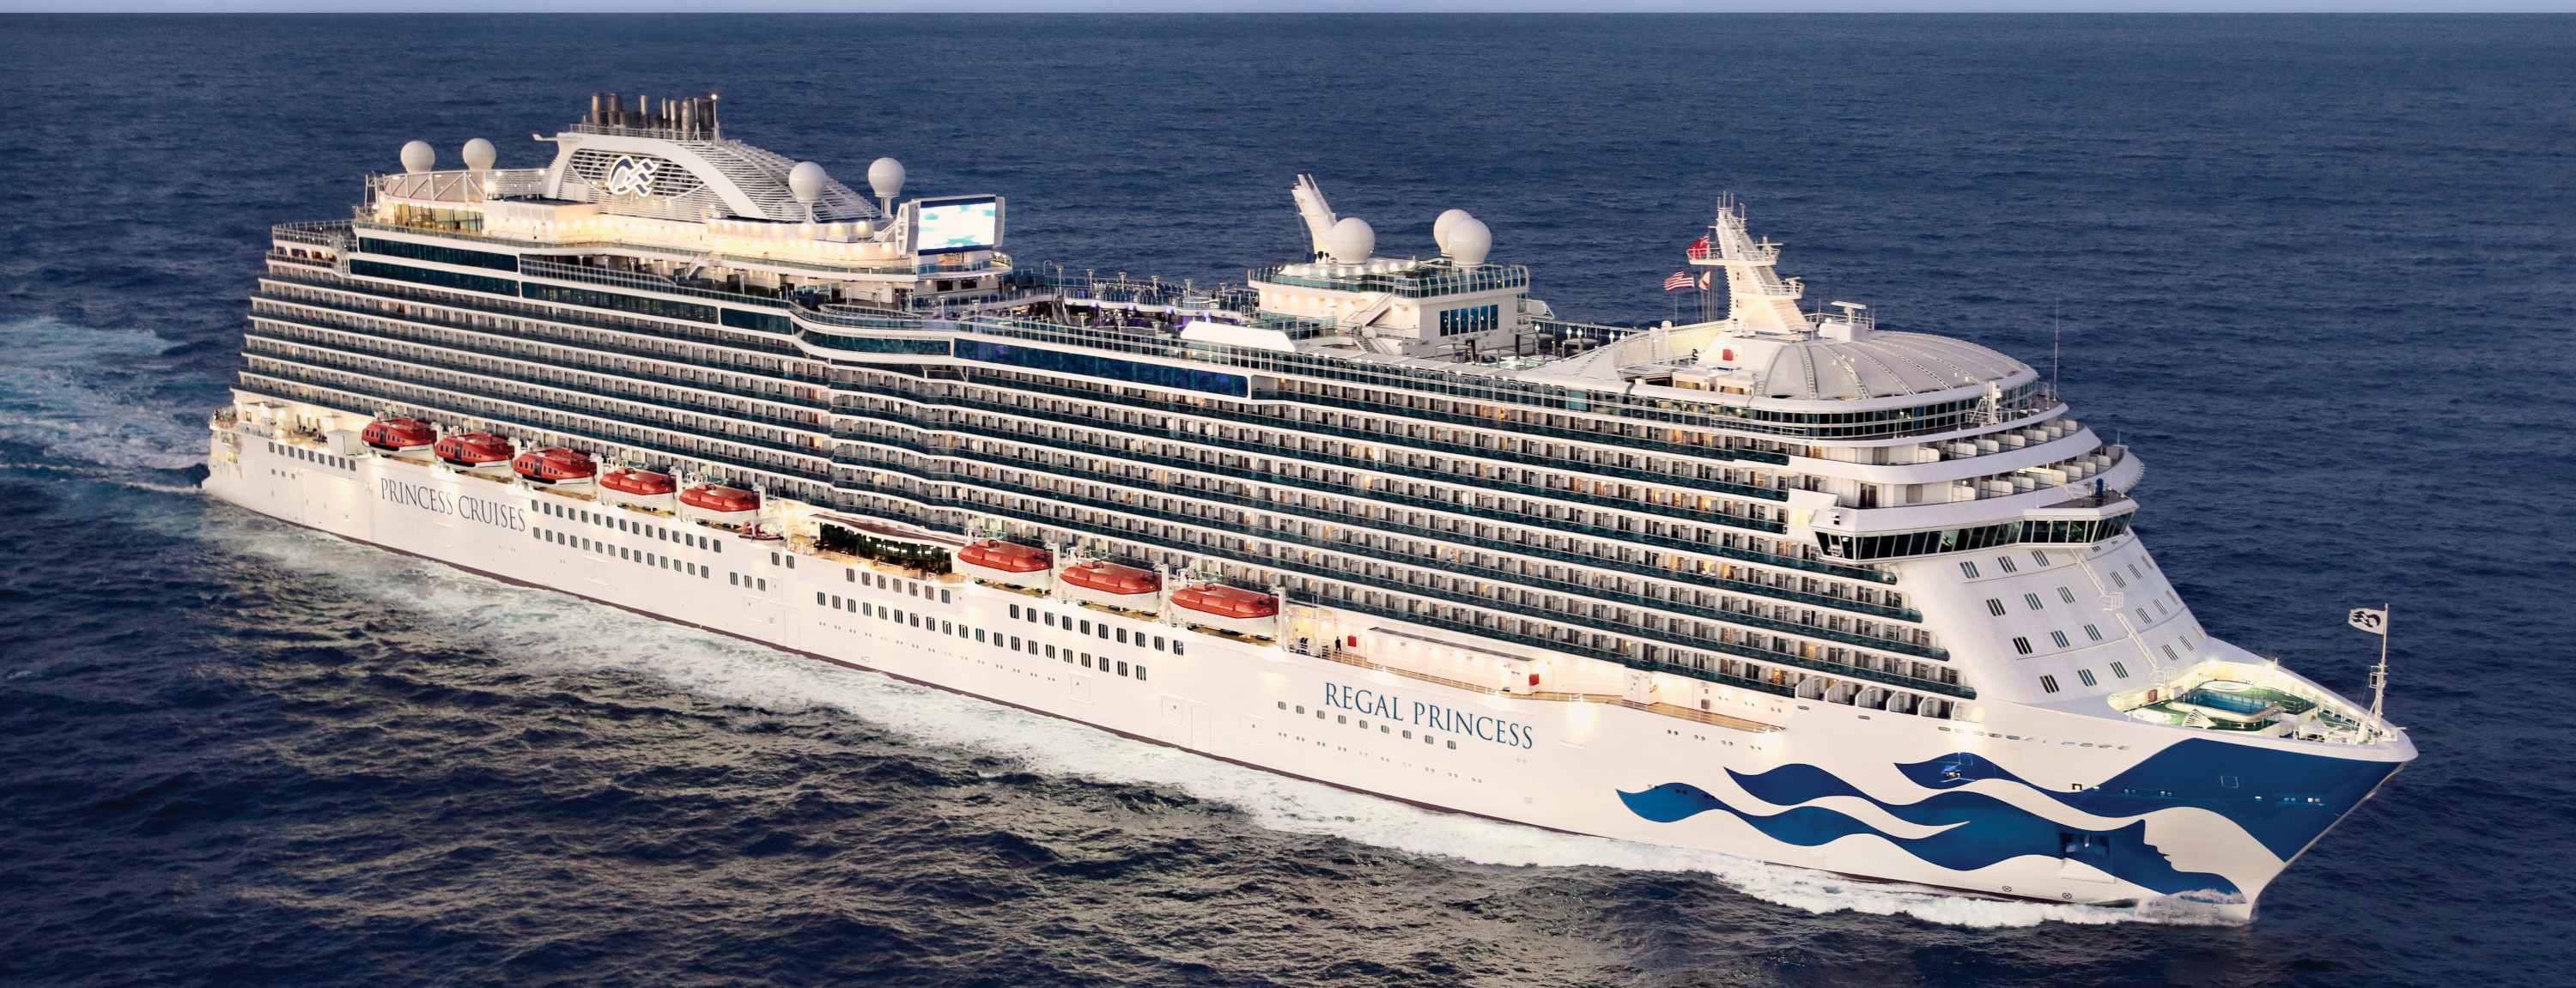 Greece and Turkey Cruise on Regal Princess